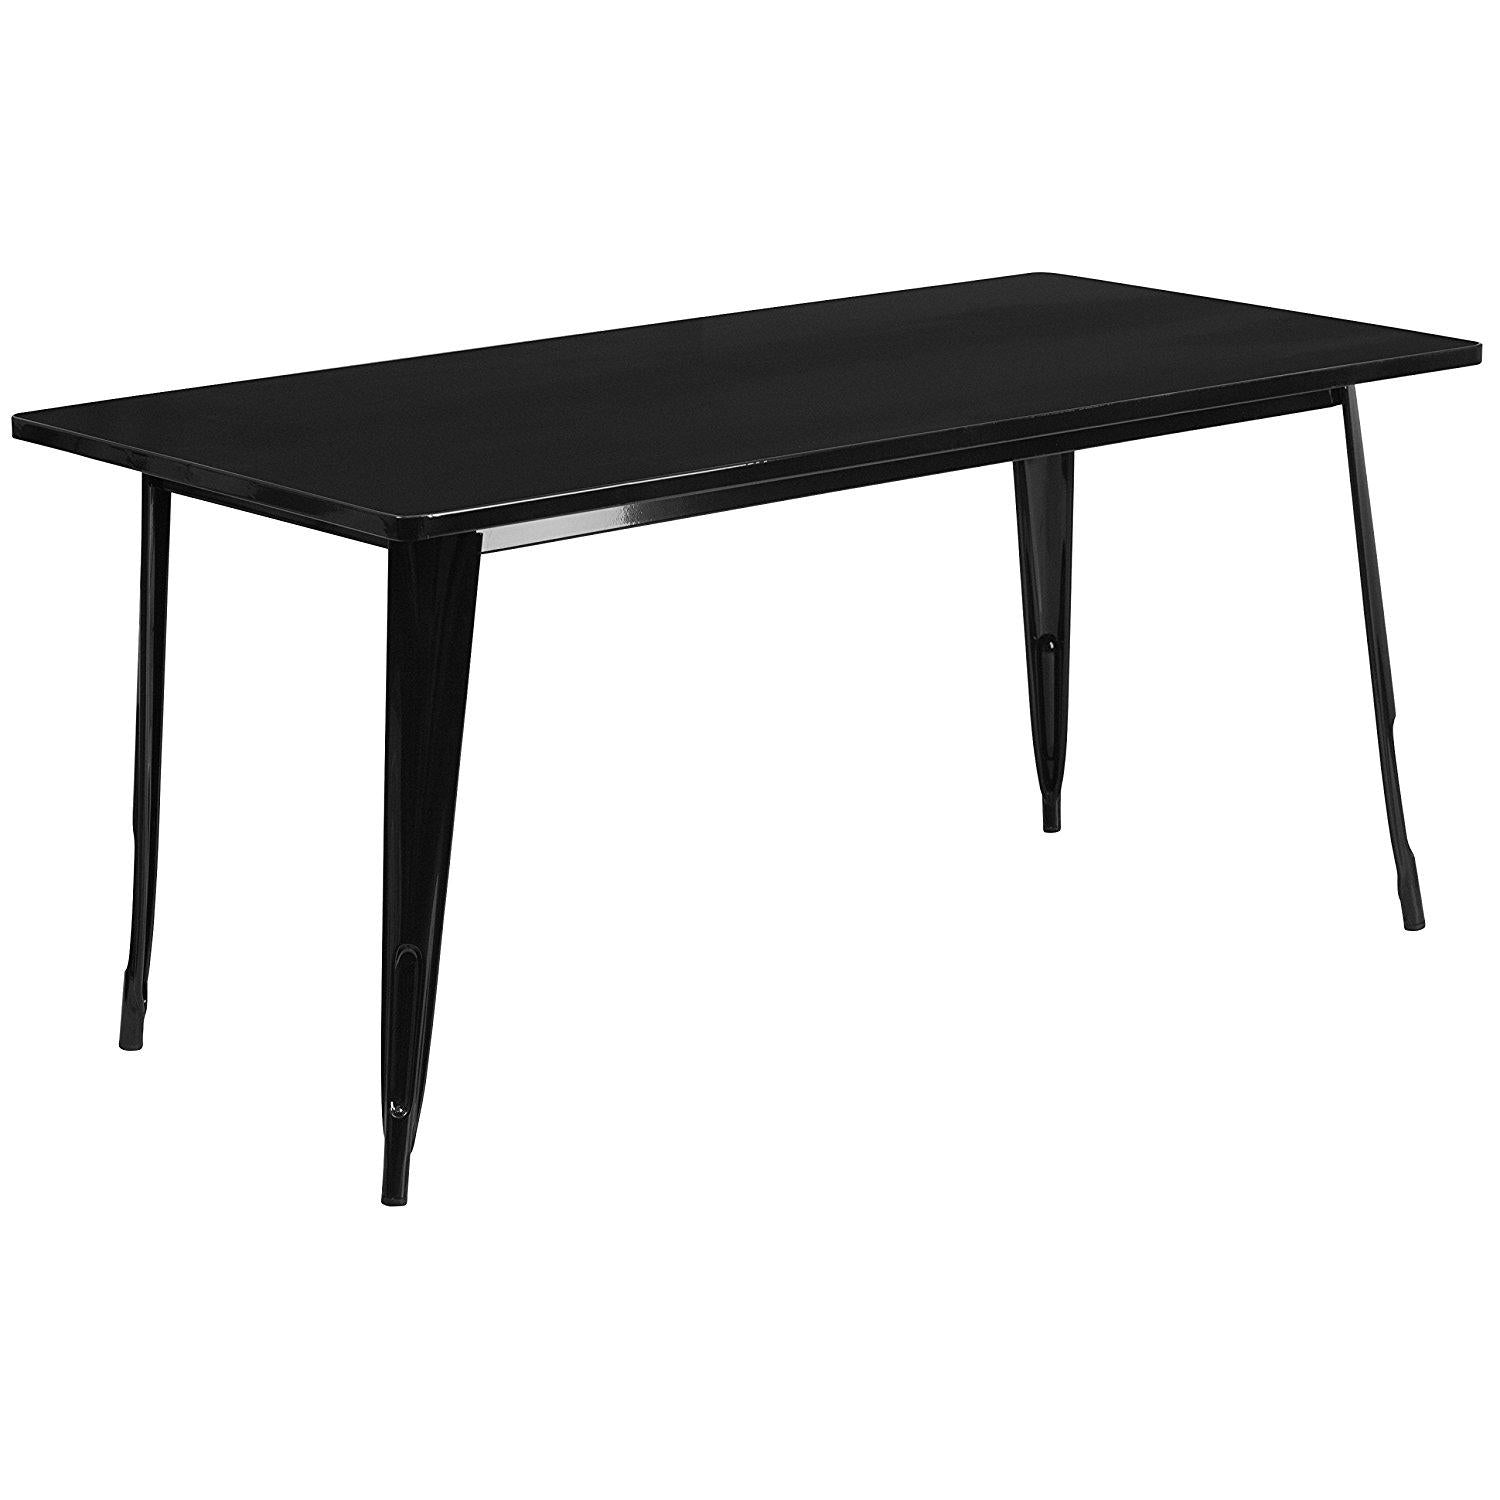 Flash Furniture Et-Ct005-Bk-Gg Rectangular Black Metal Indoor Table, 31.5 X 63